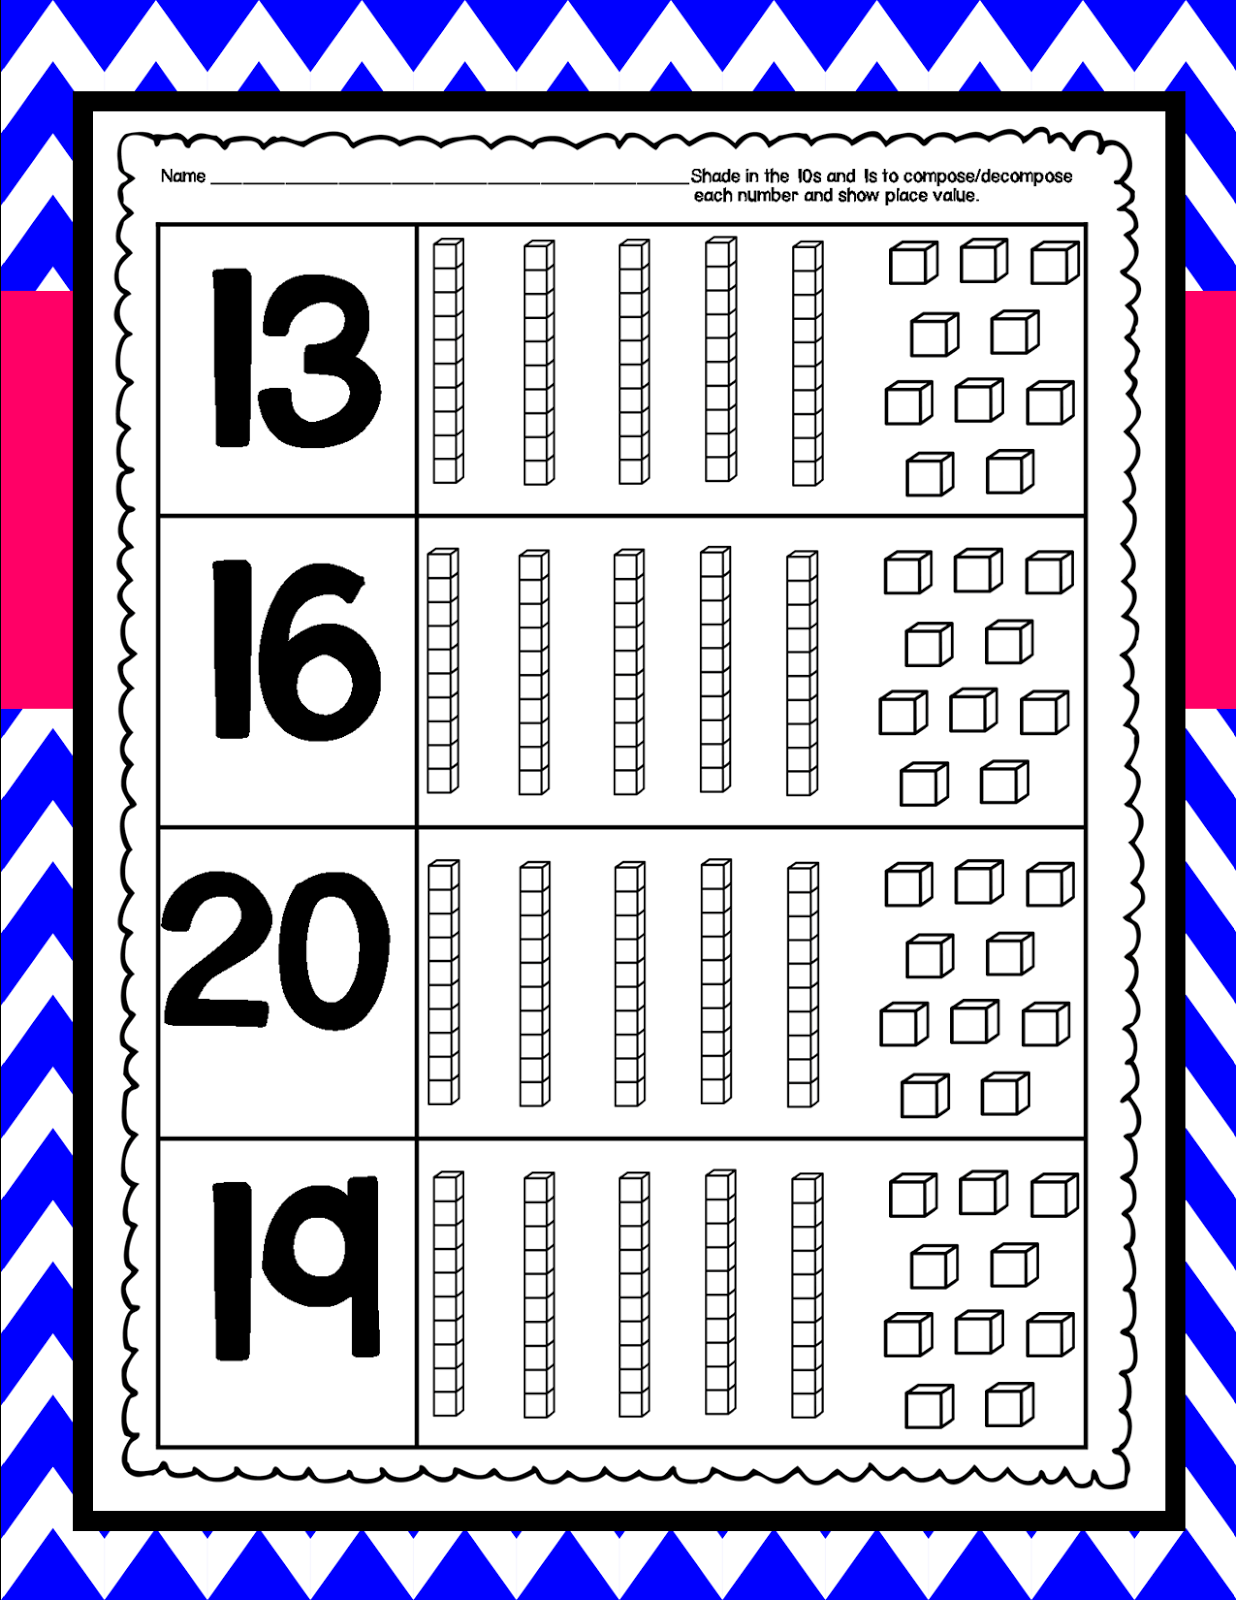 Compose Decompose Numbers And Place Value